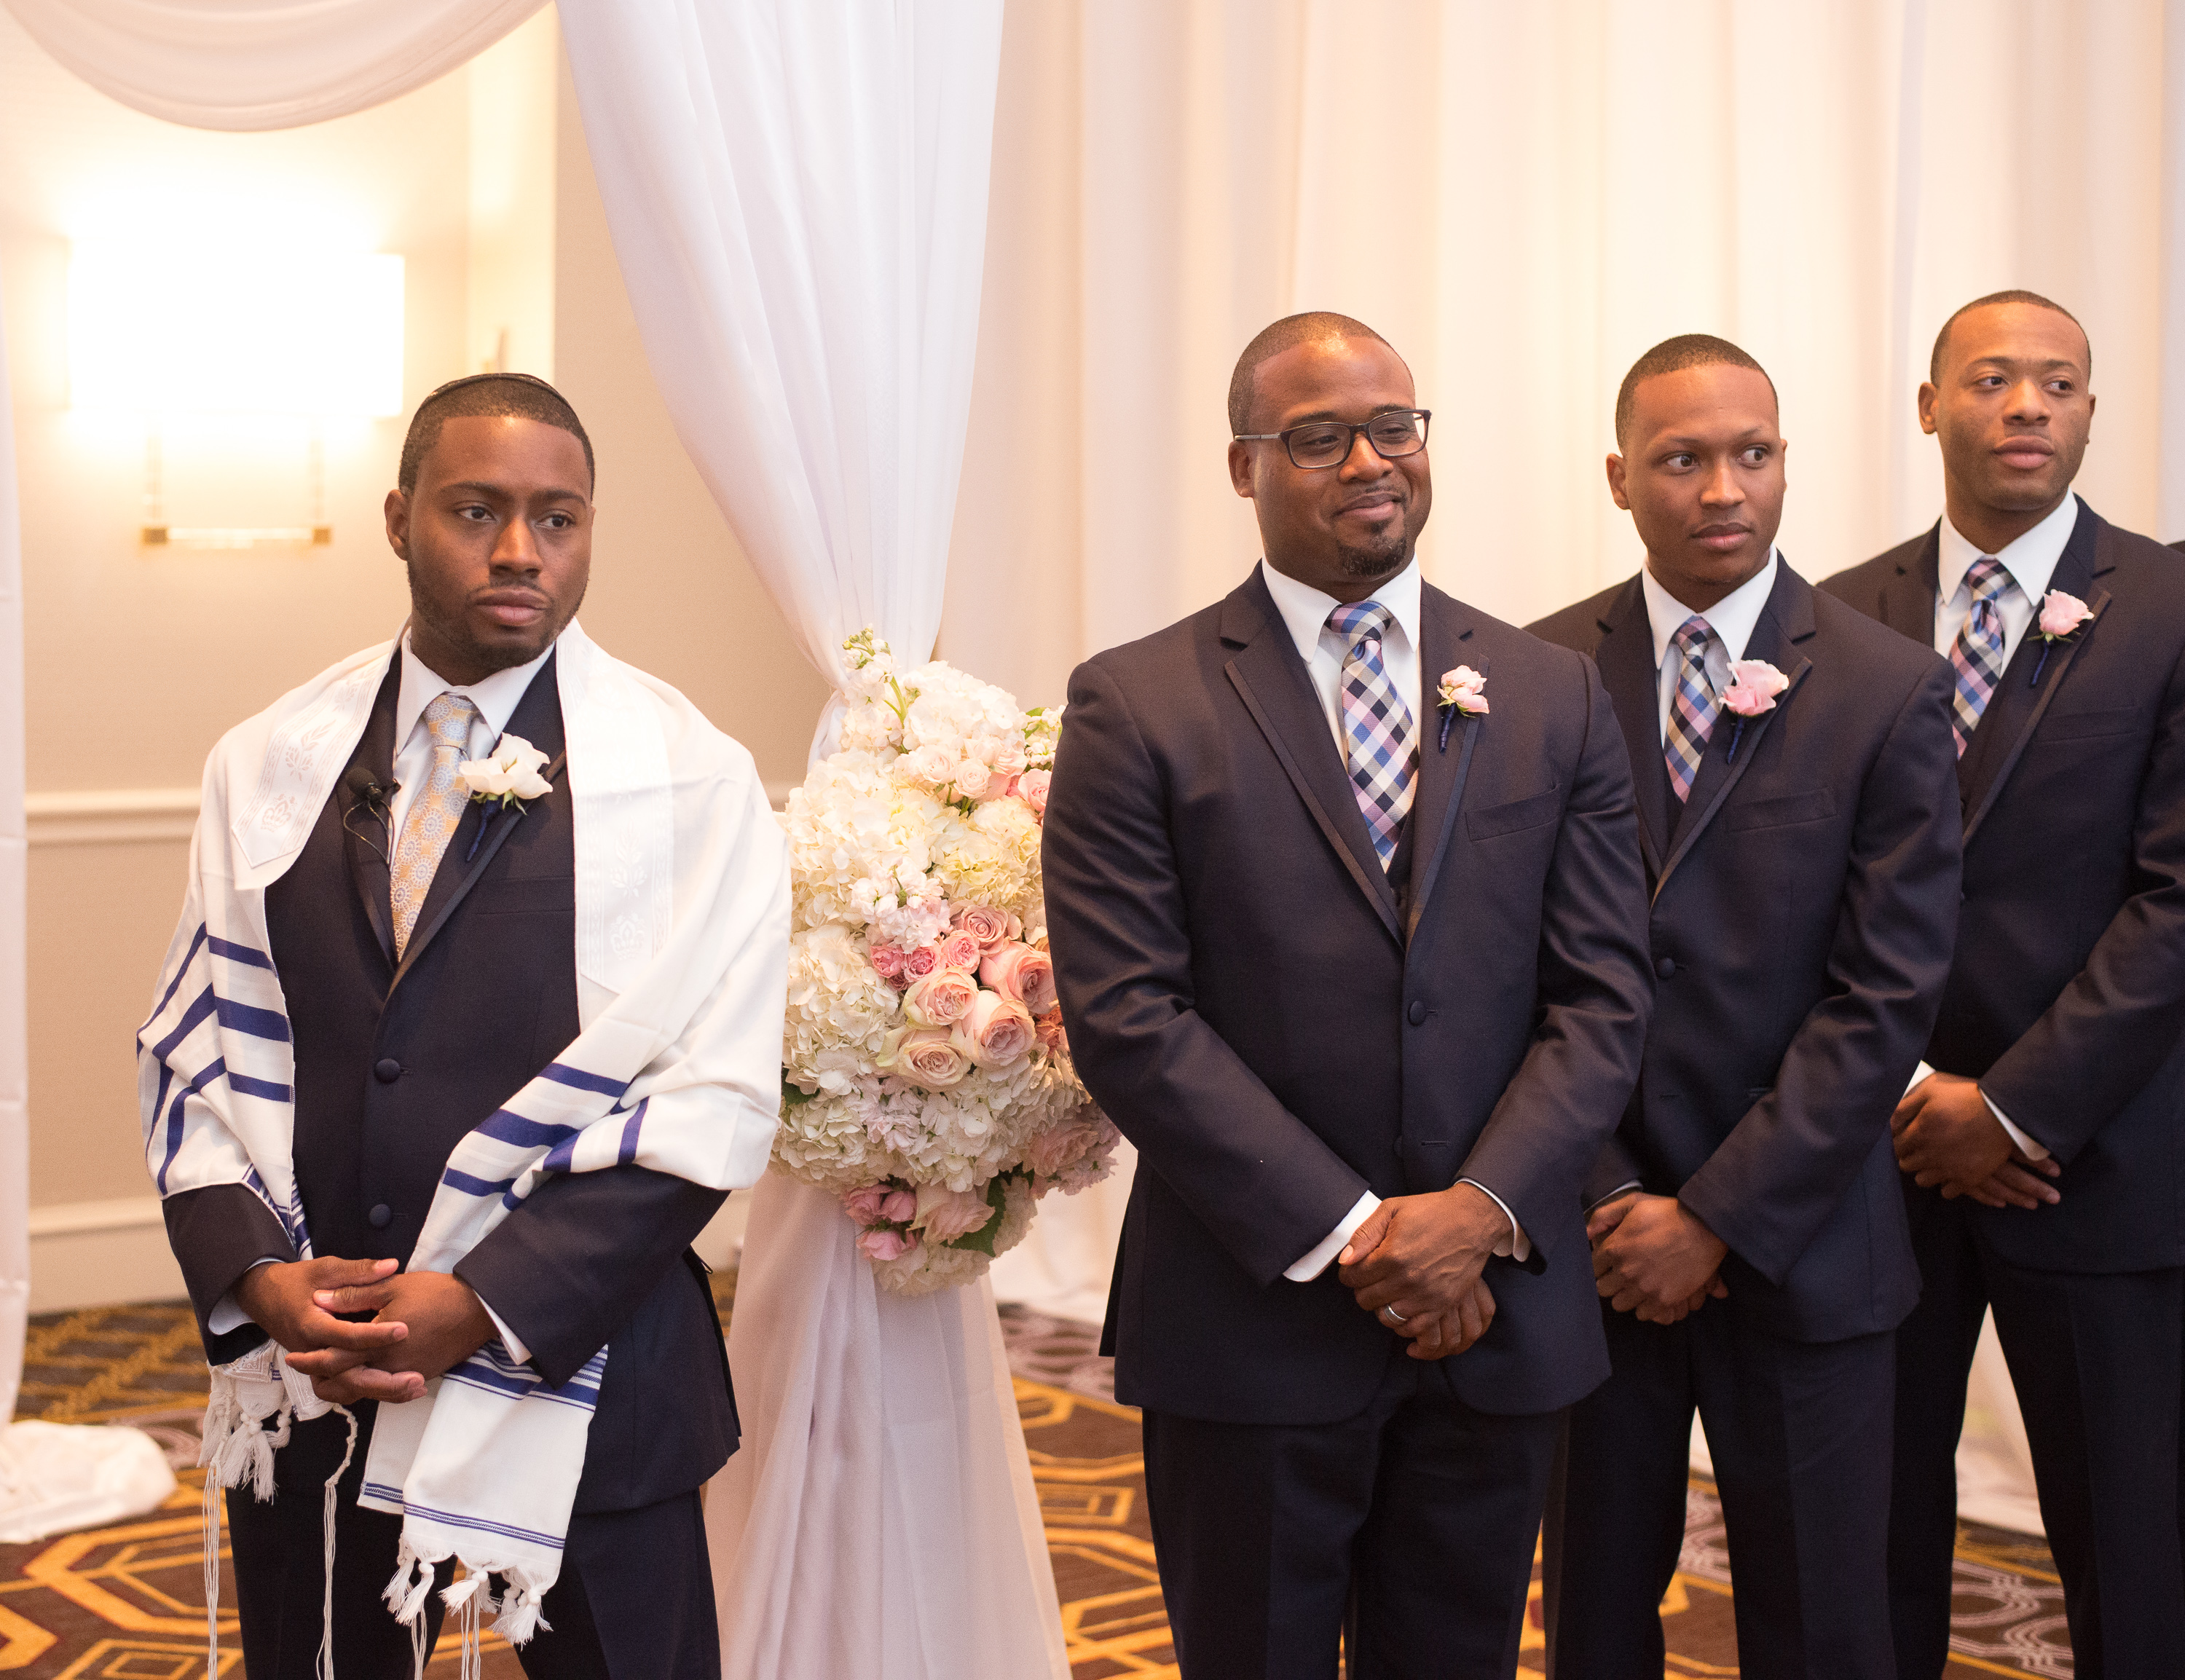 dallas-jewish-wedding-donnell-perry-photo-03